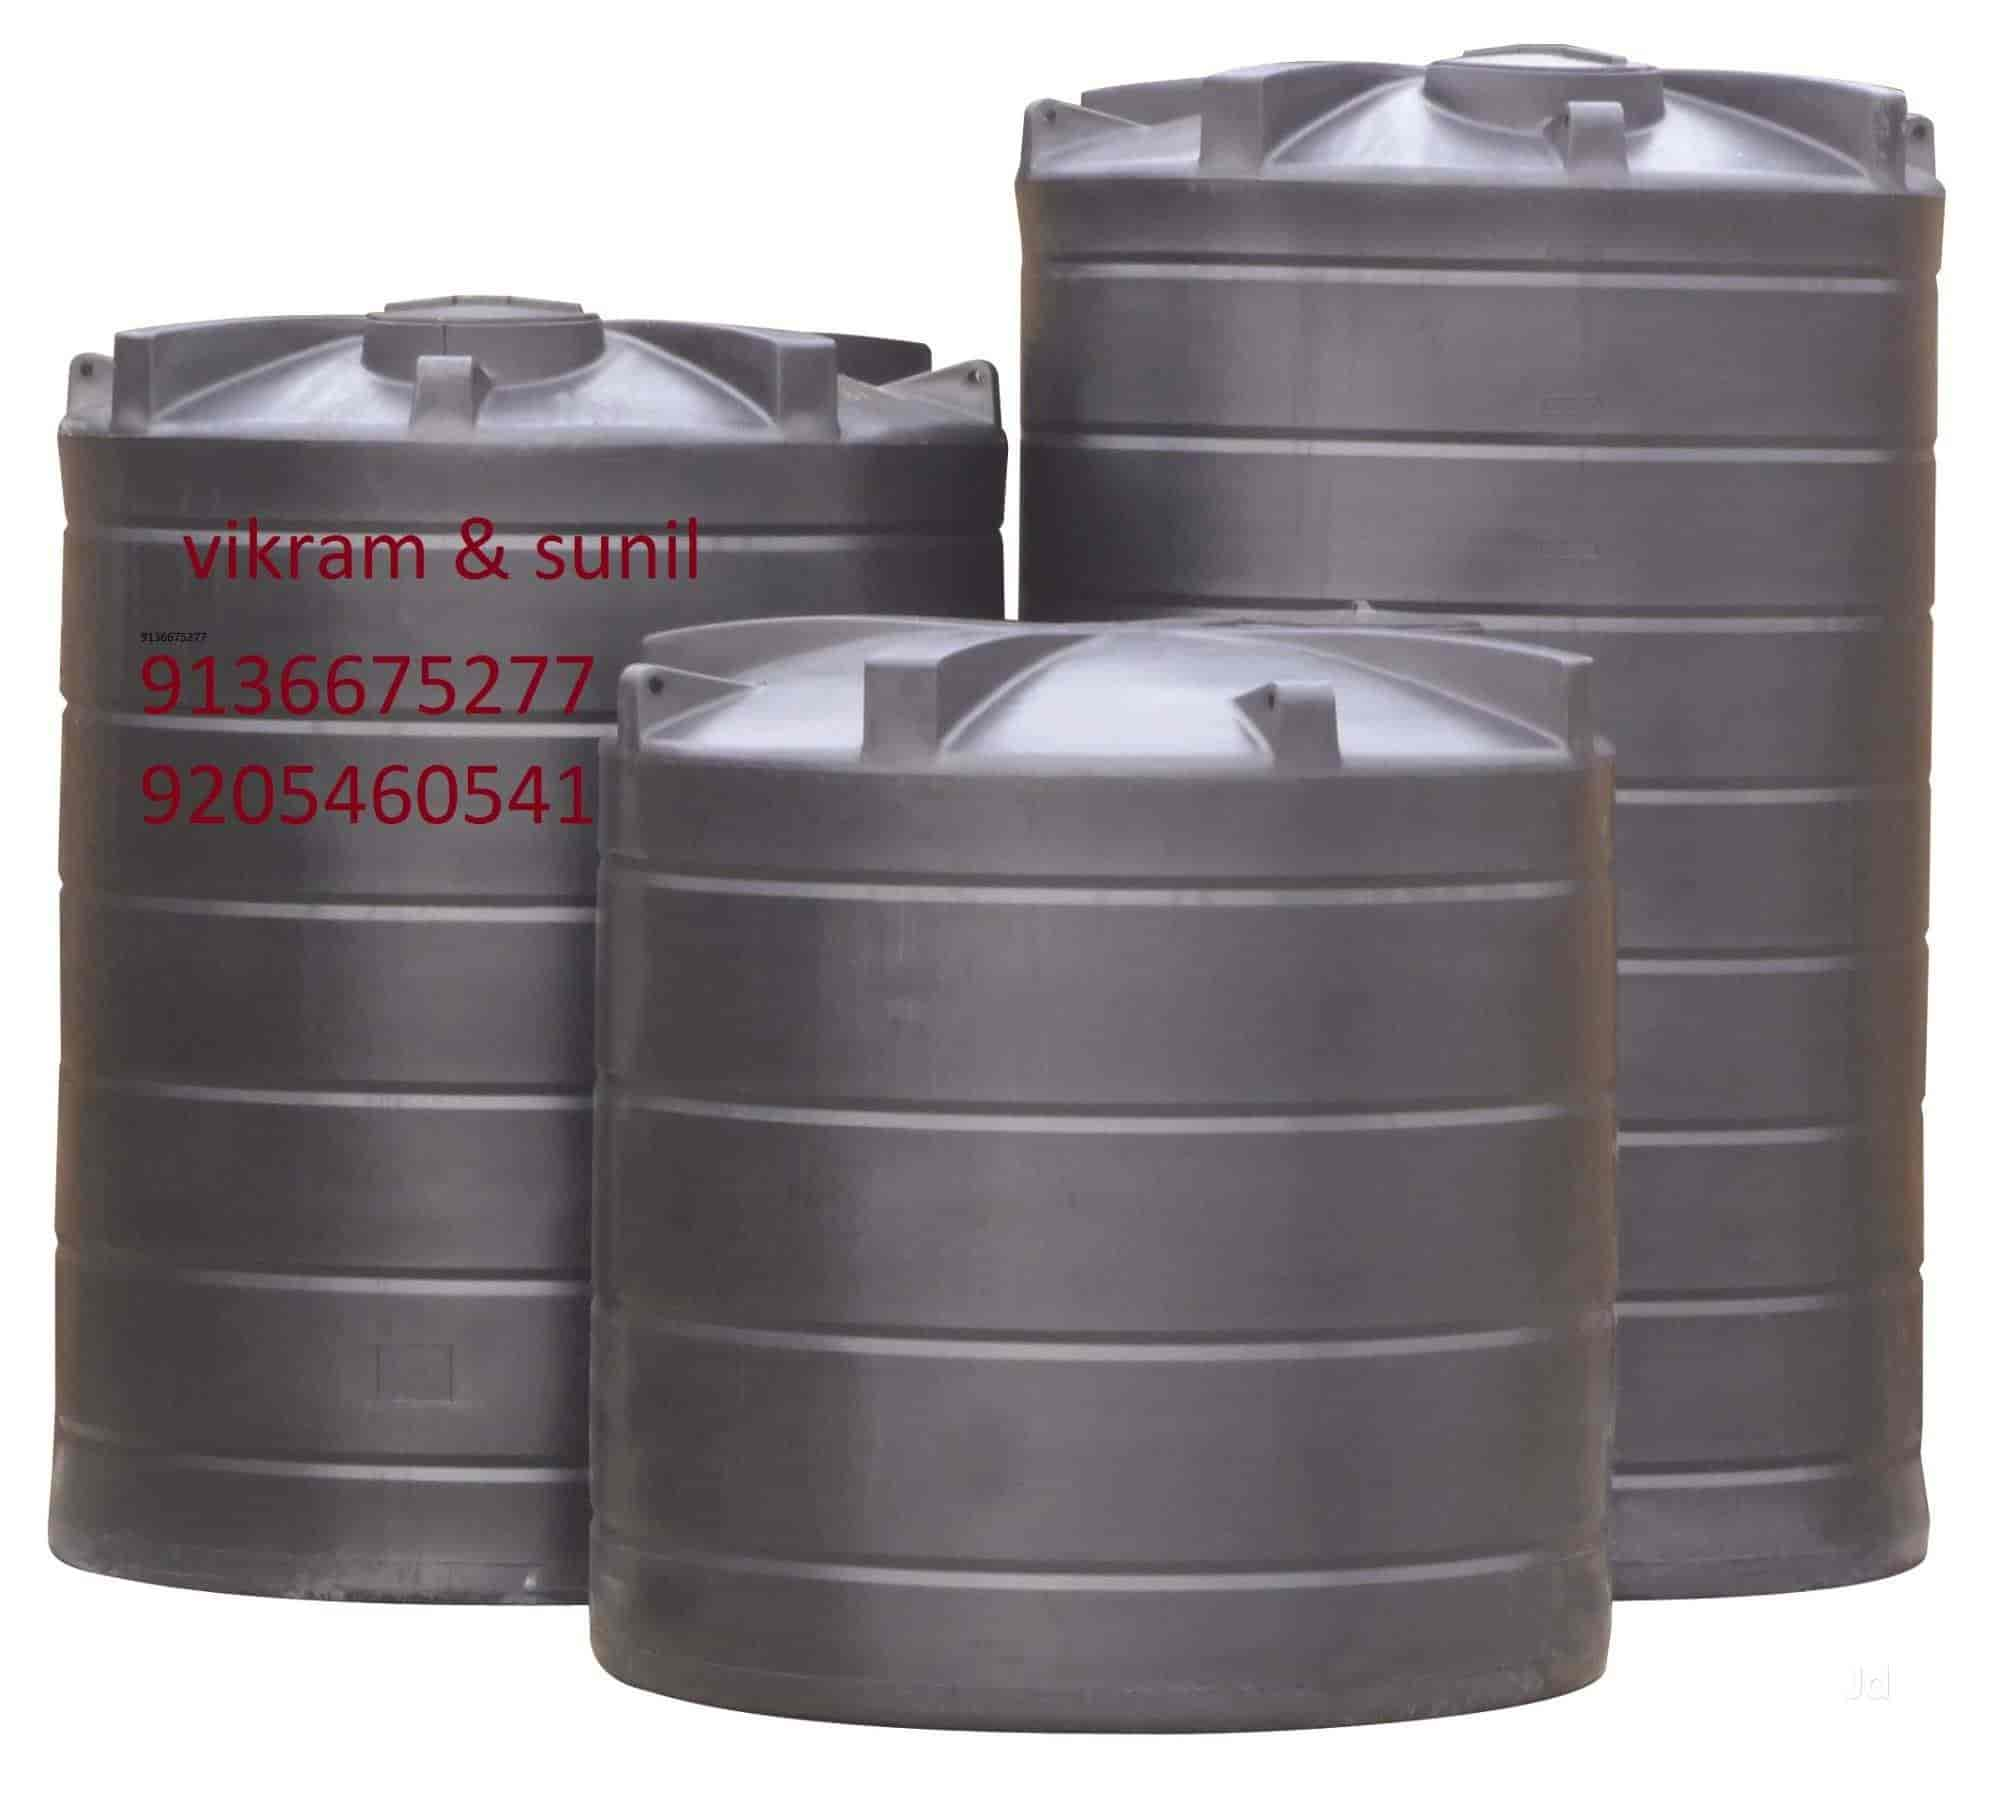 Discussion on this topic: How to Clean a Plastic Water Tank, how-to-clean-a-plastic-water-tank/